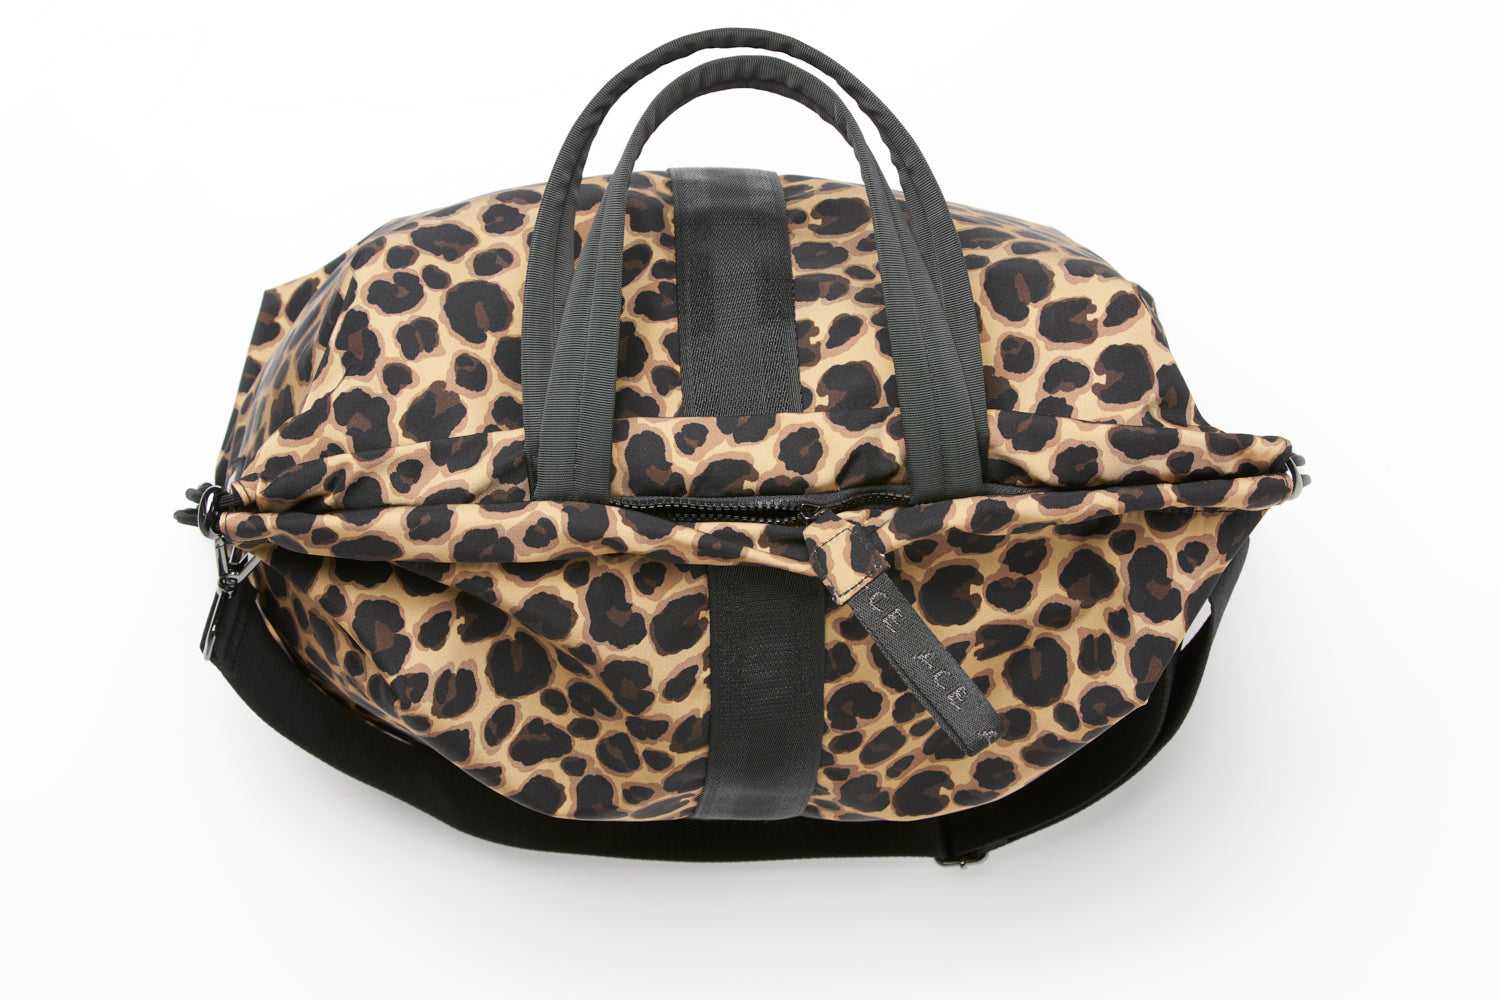 Best Travel bag in Leopard print sustainable bag